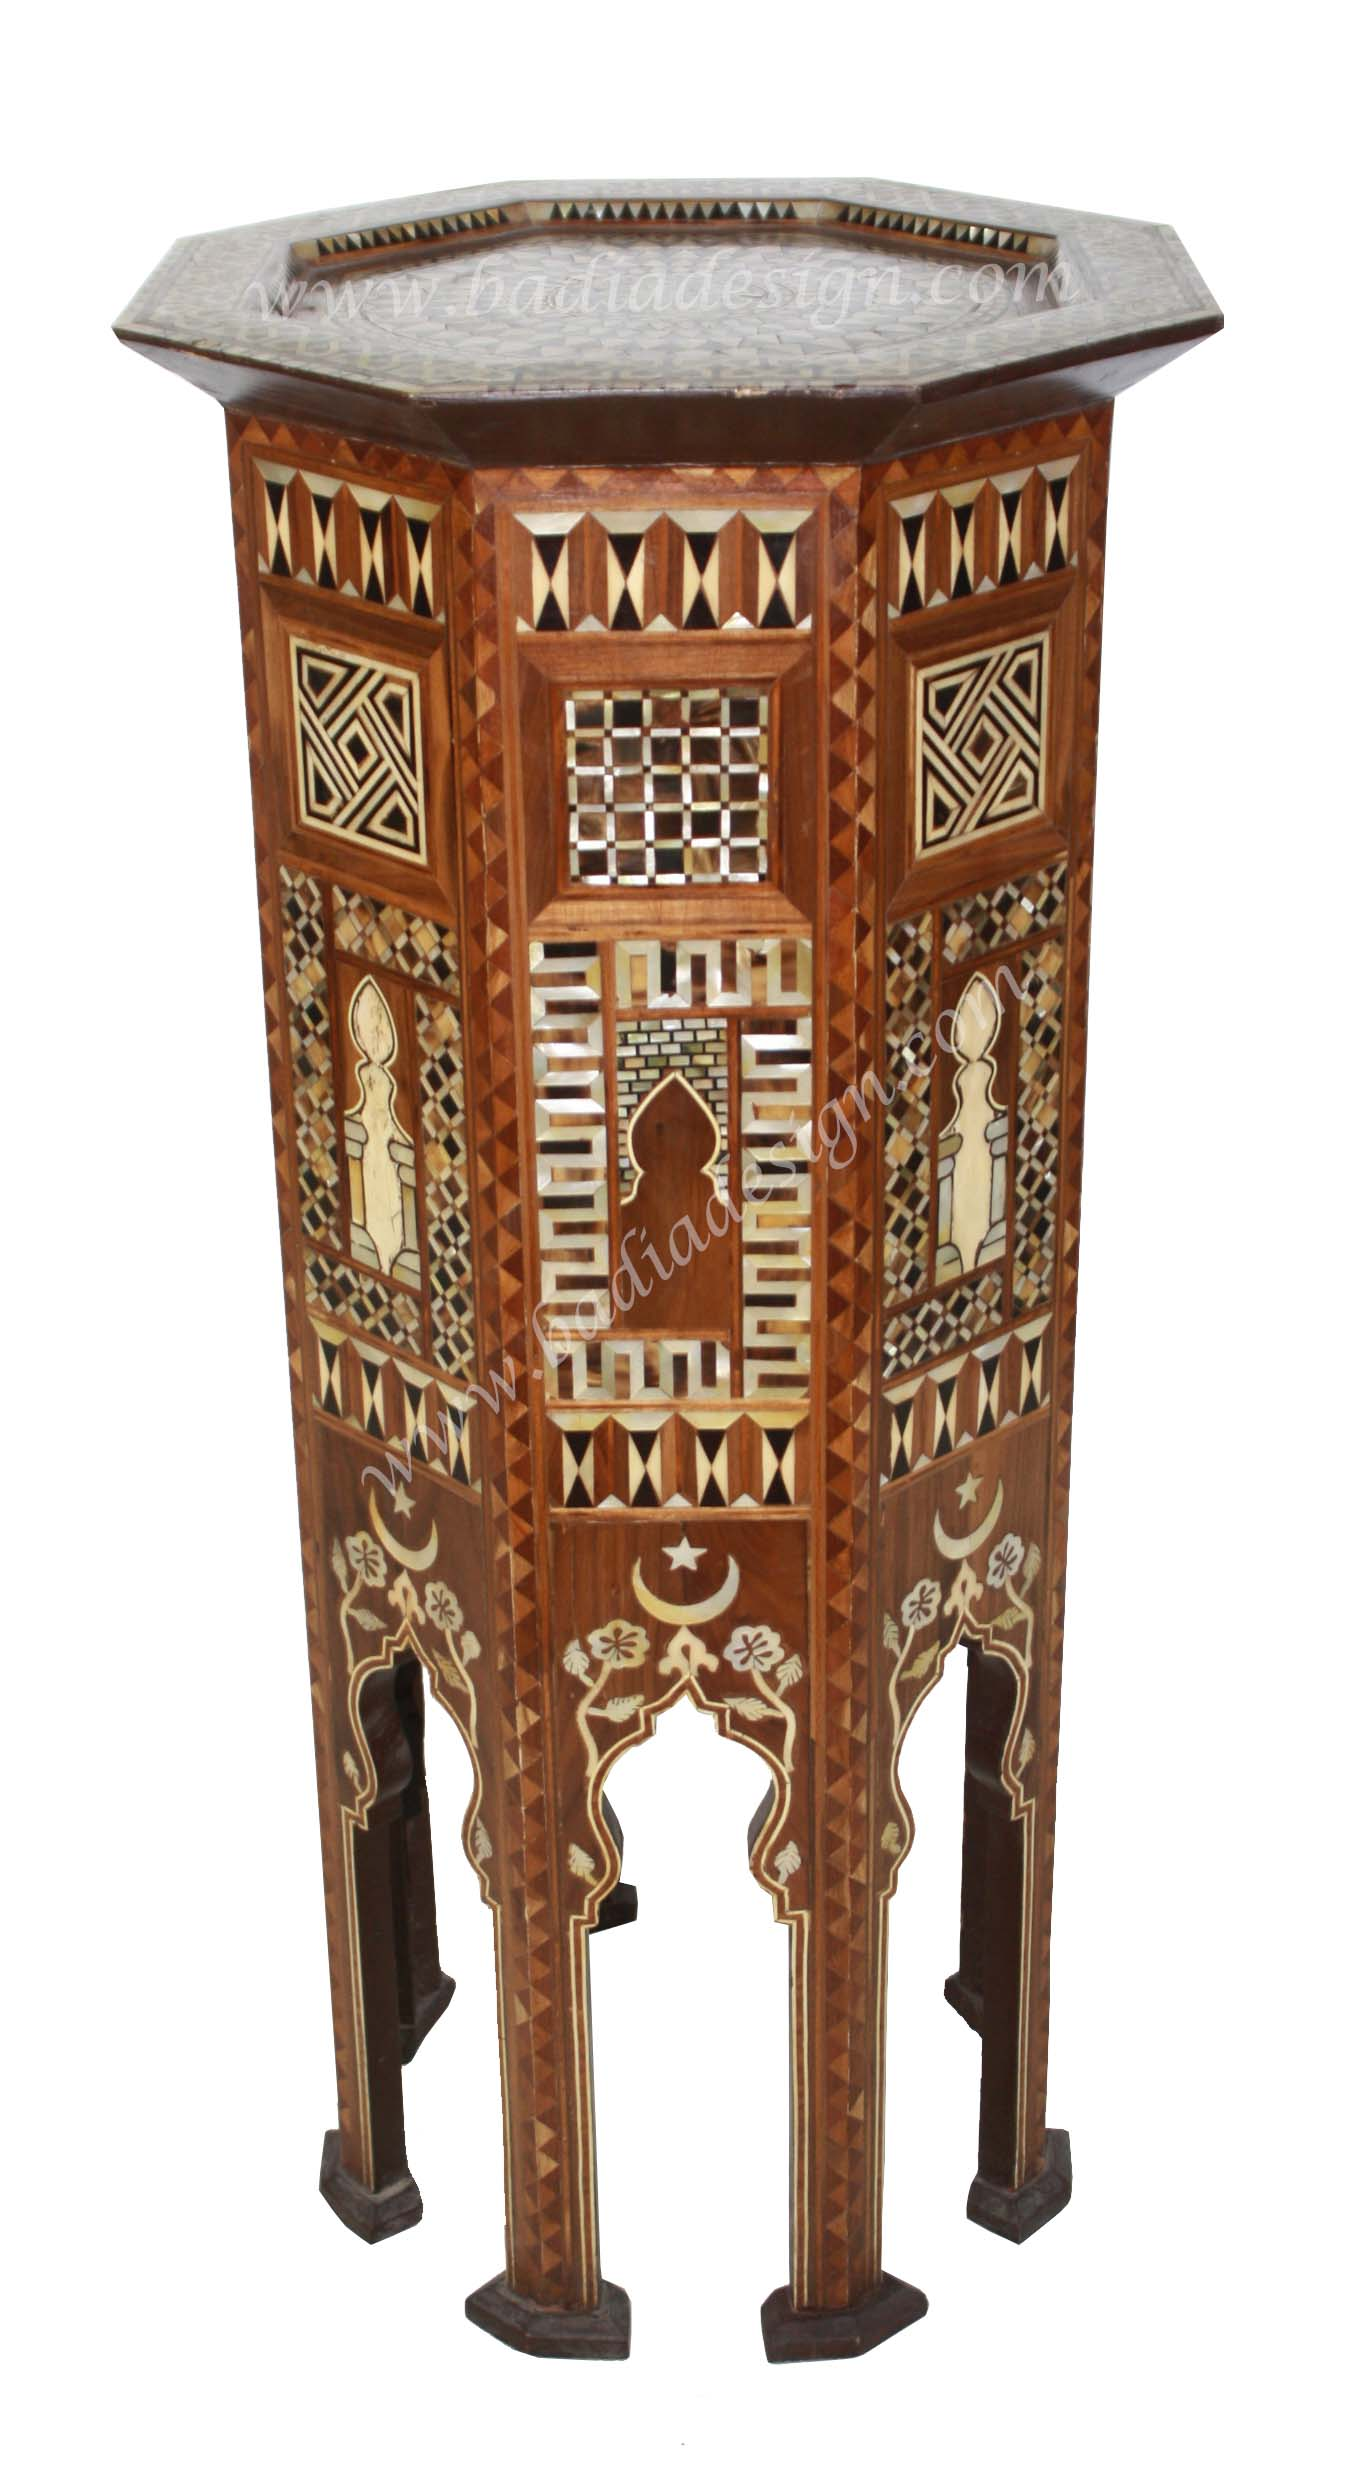 tall-syrian-inlay-side-table-mop-st065-1.jpg